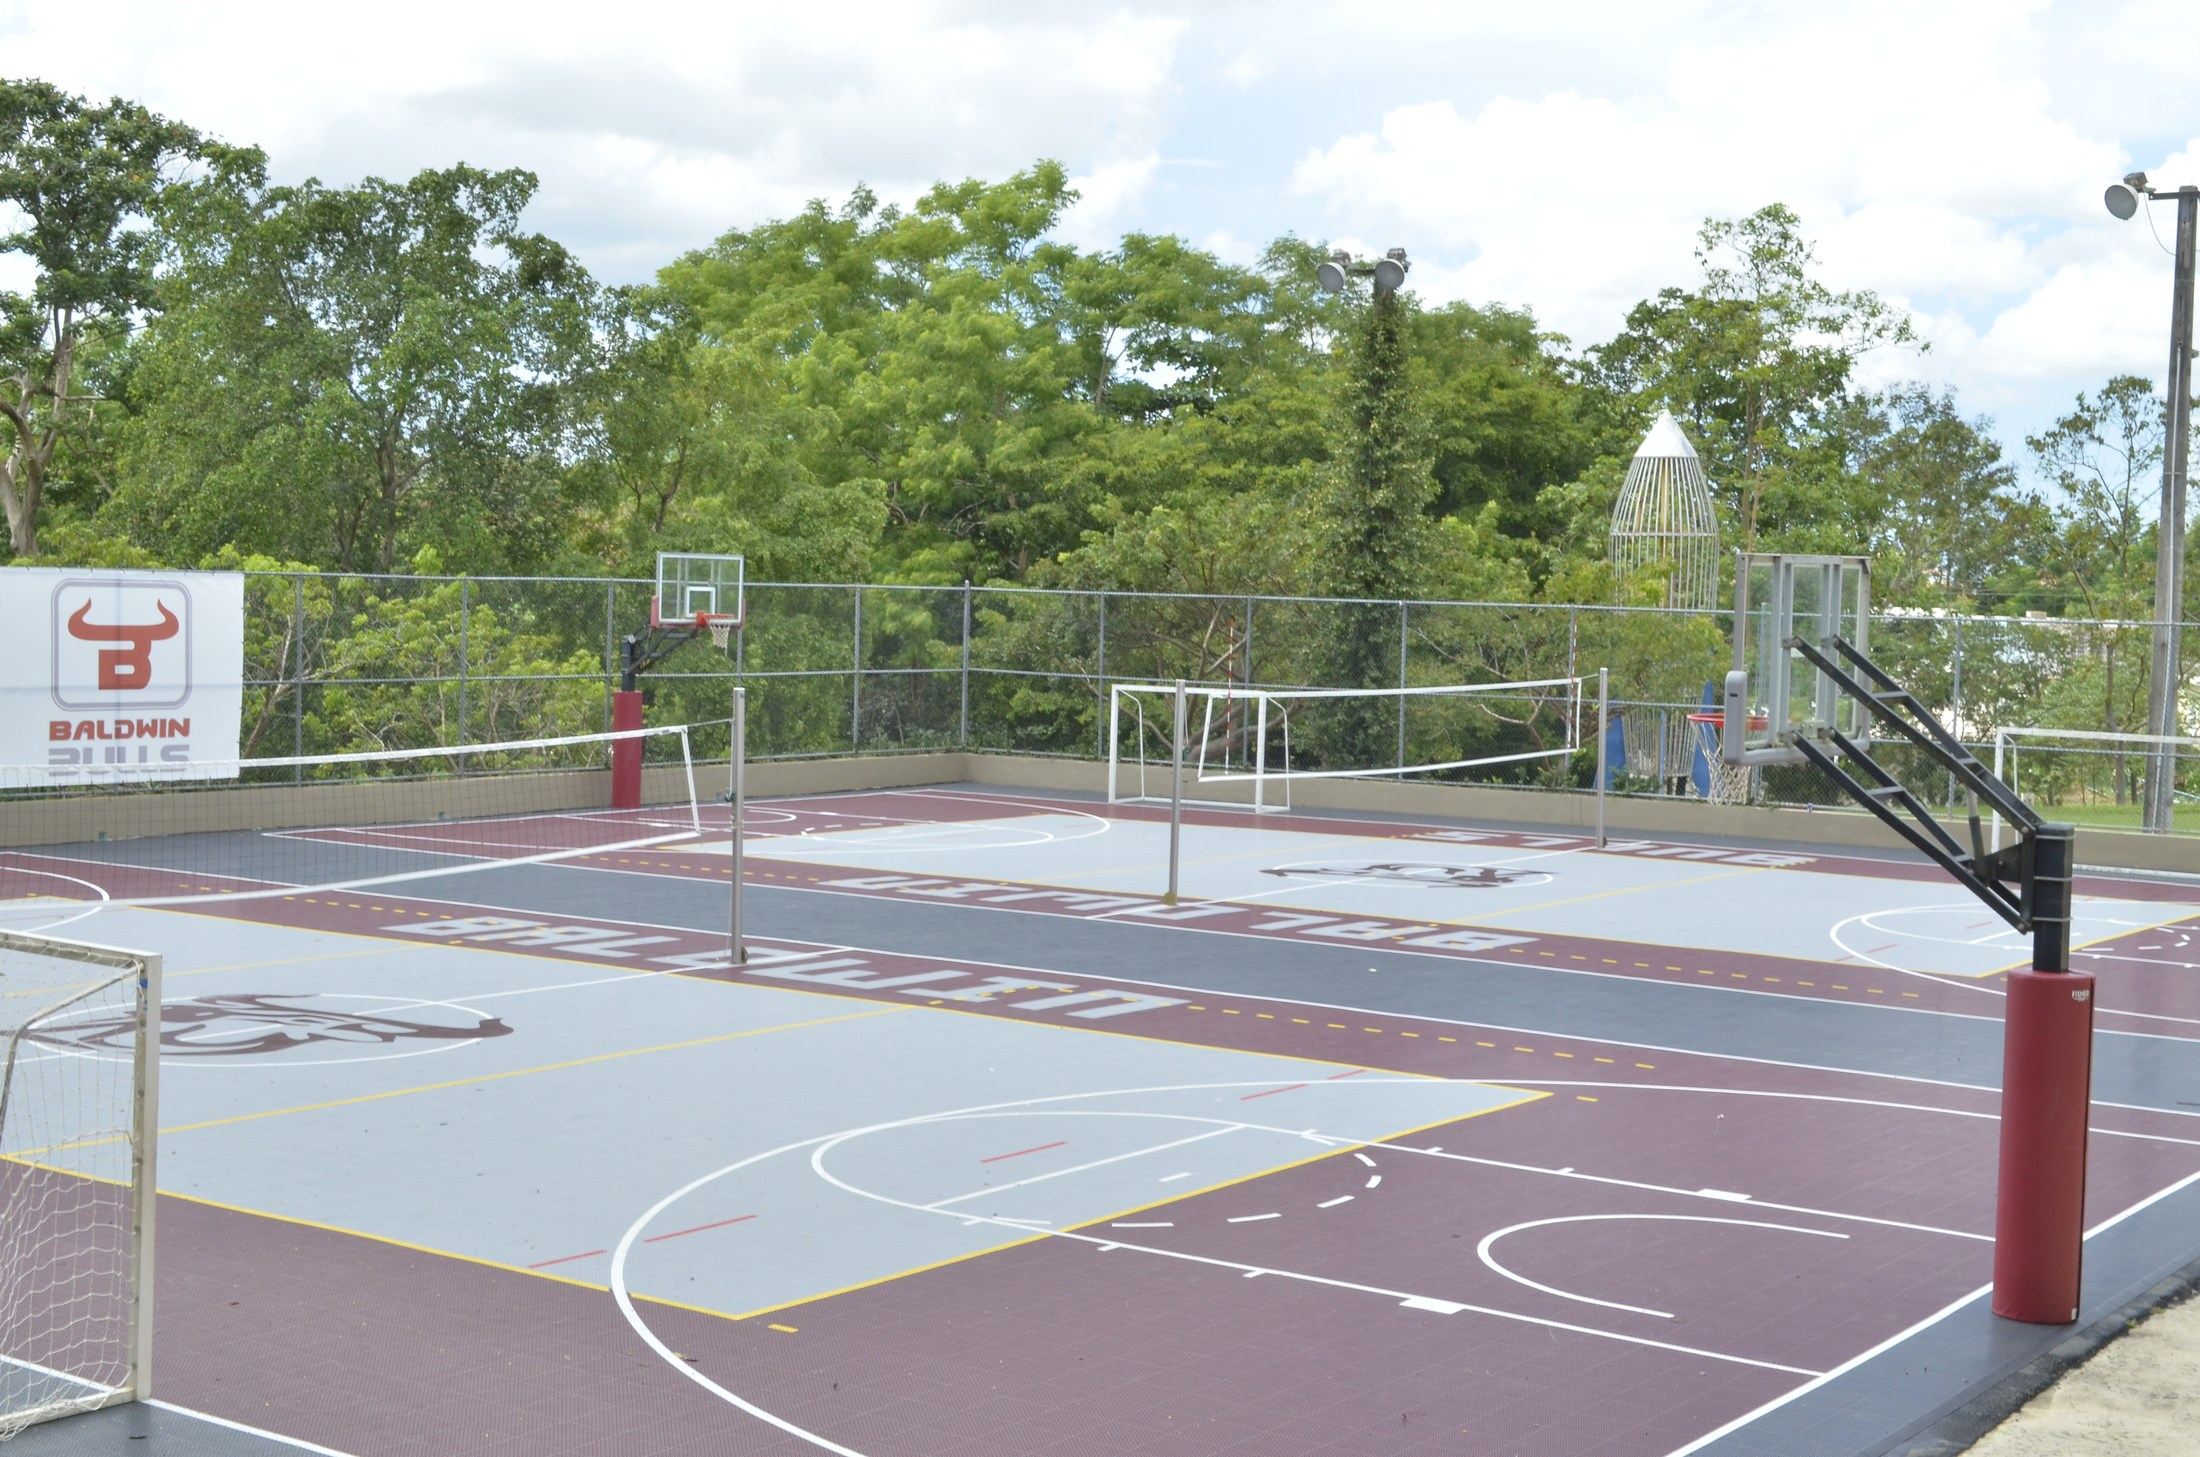 Baldwin School outdoor courts